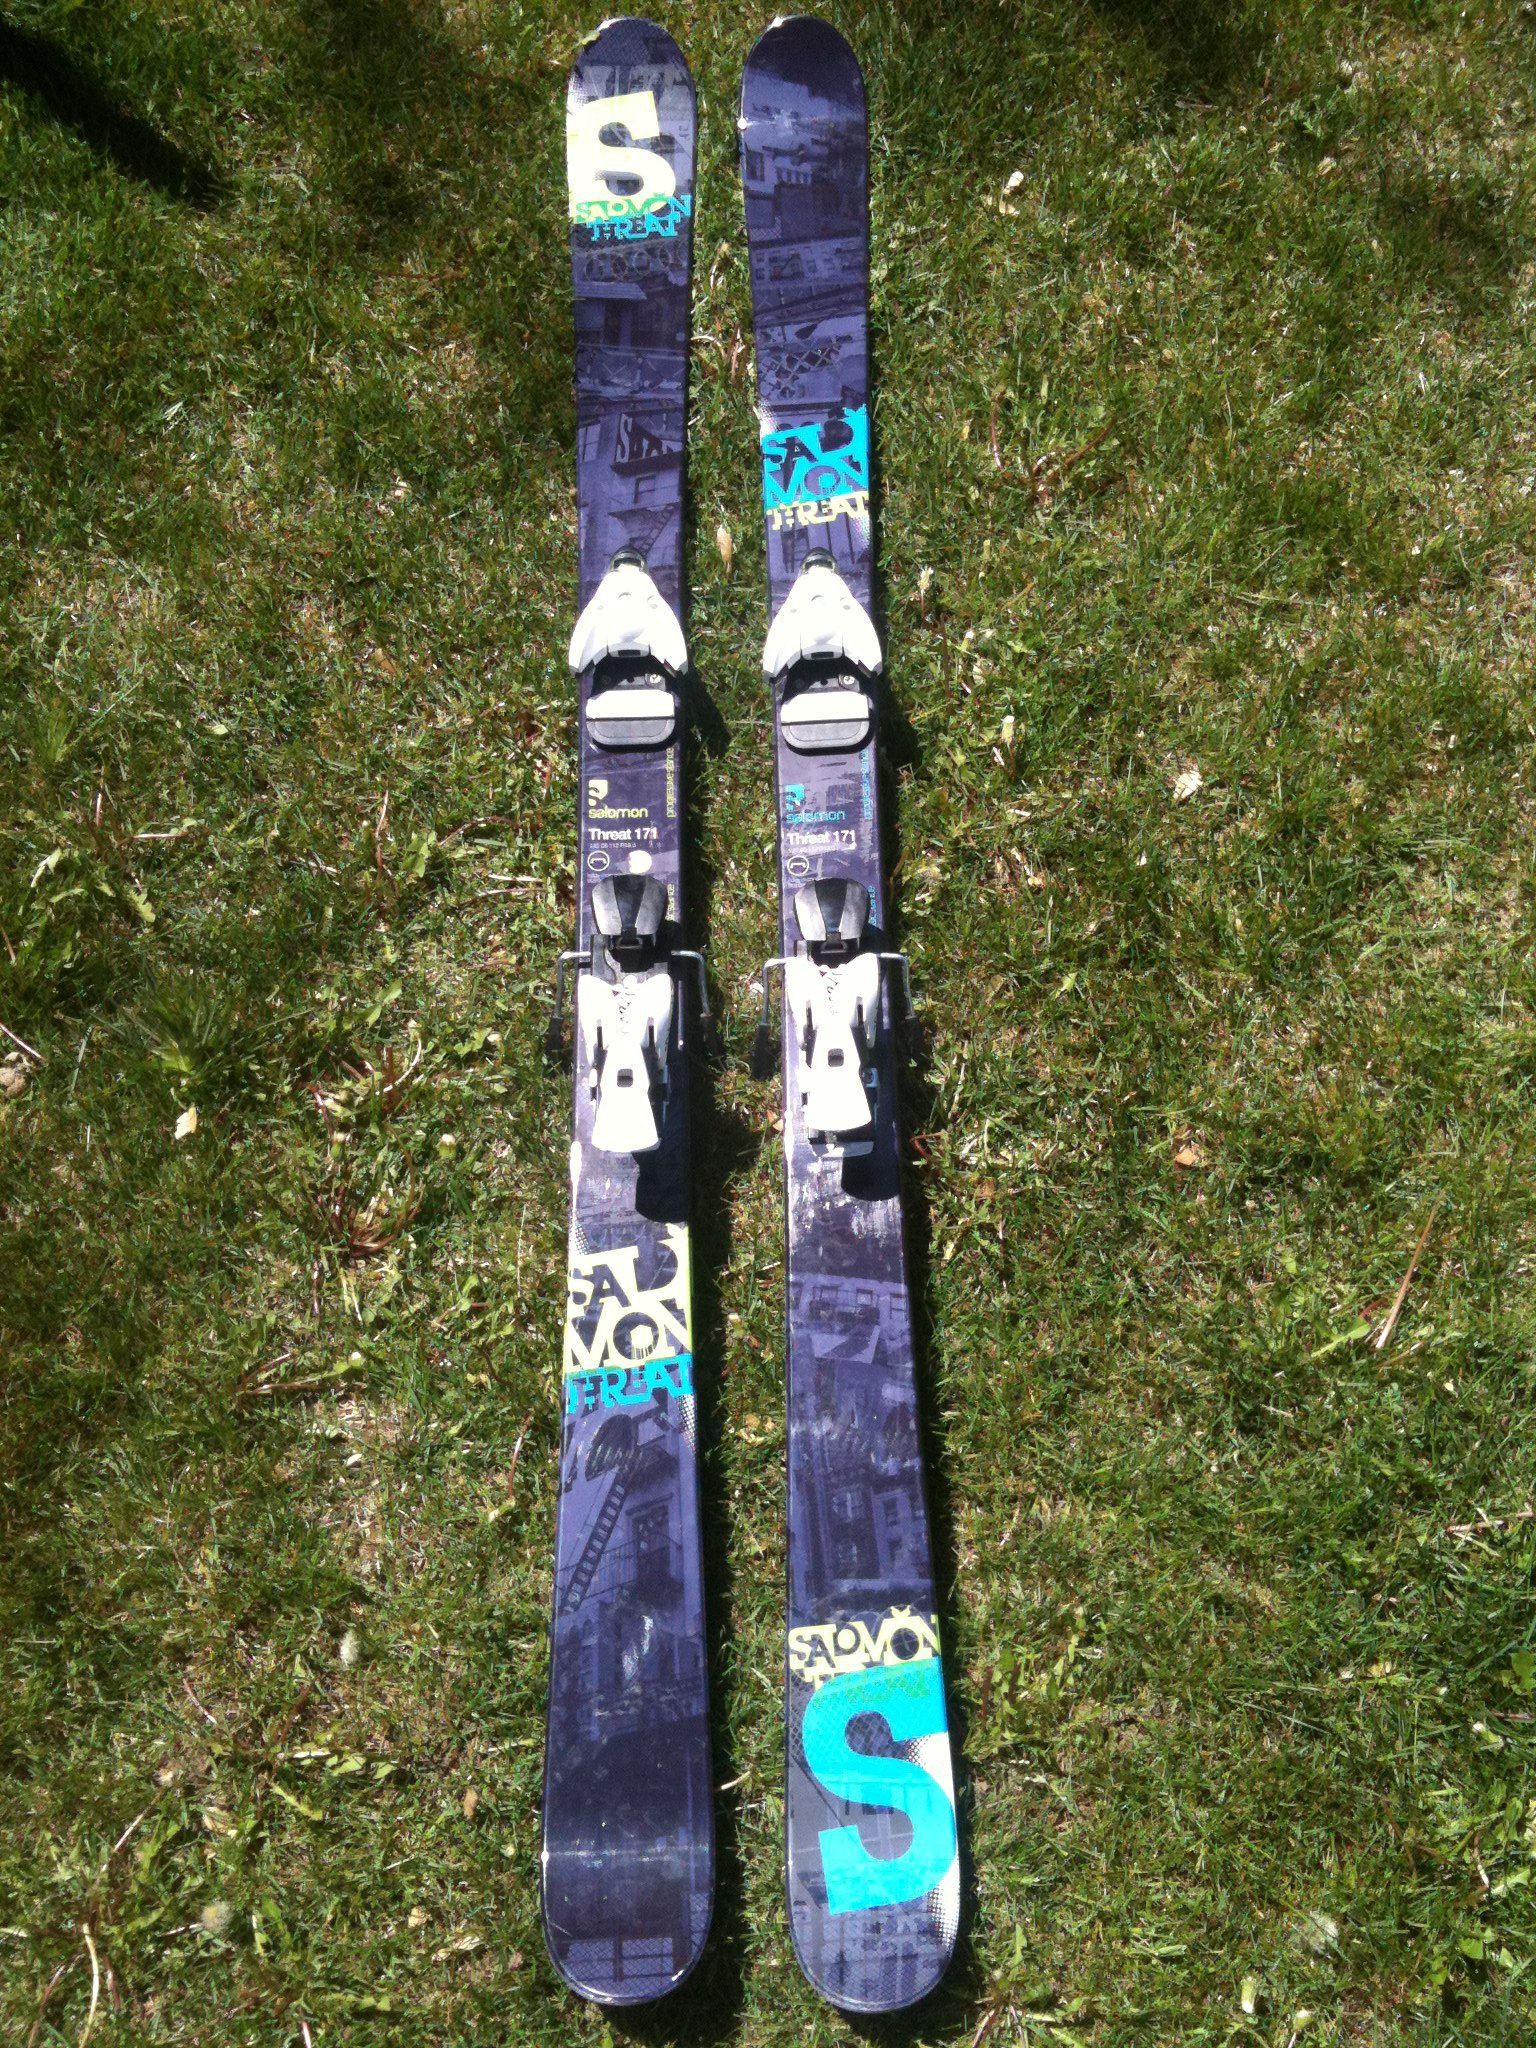 NEW 171 Salomon Threats w/ NEW Salomon STH 12 bindings